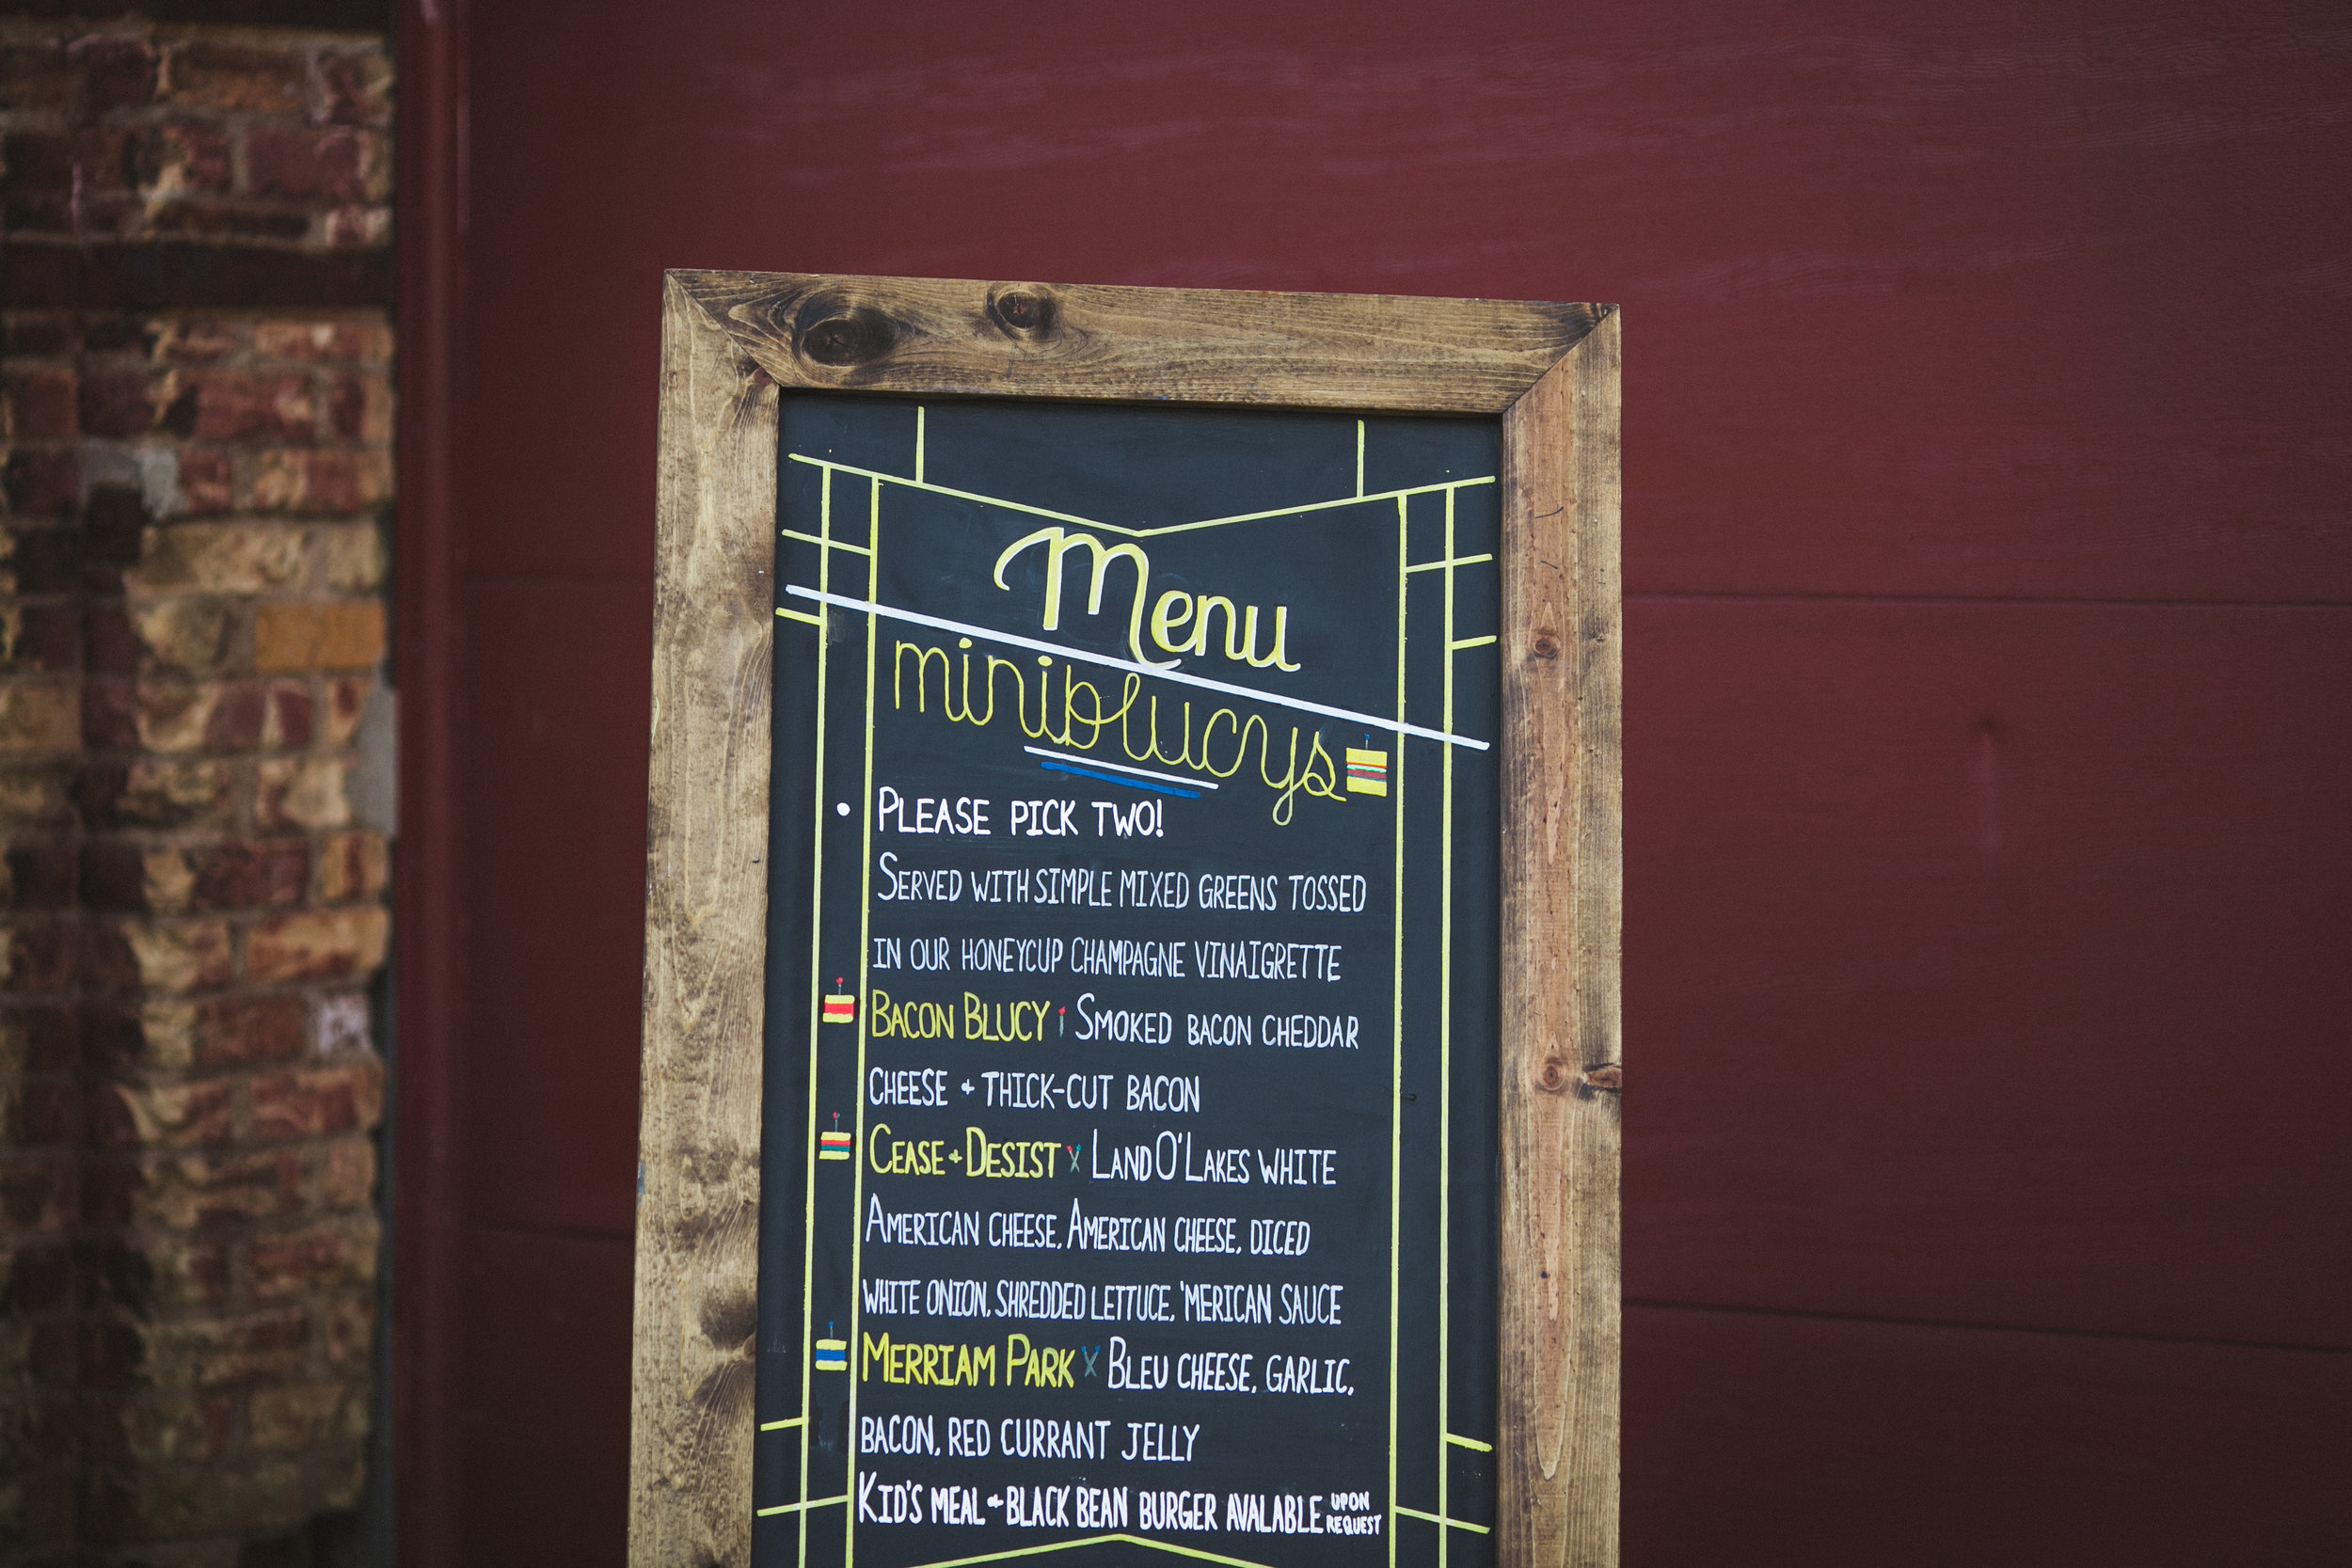 blue door incorporated our invite design (done by long-time friend Ben Wood) into the menu